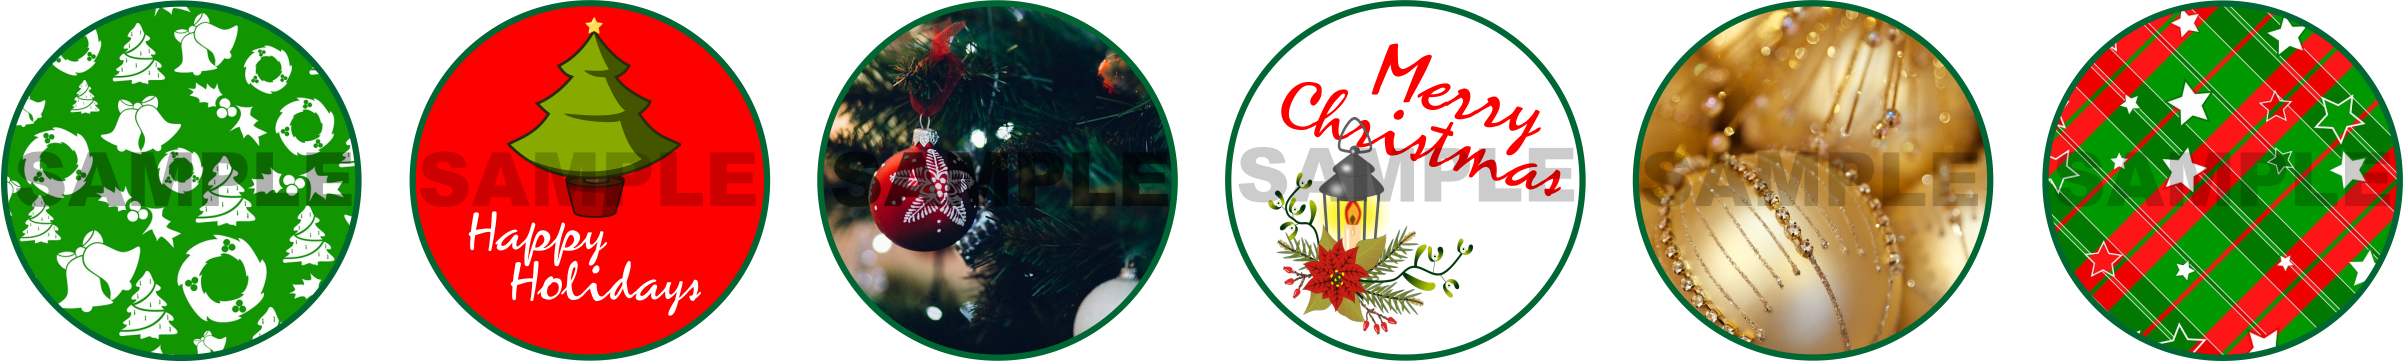 Merry Christmas Circle Stickers for Gifts